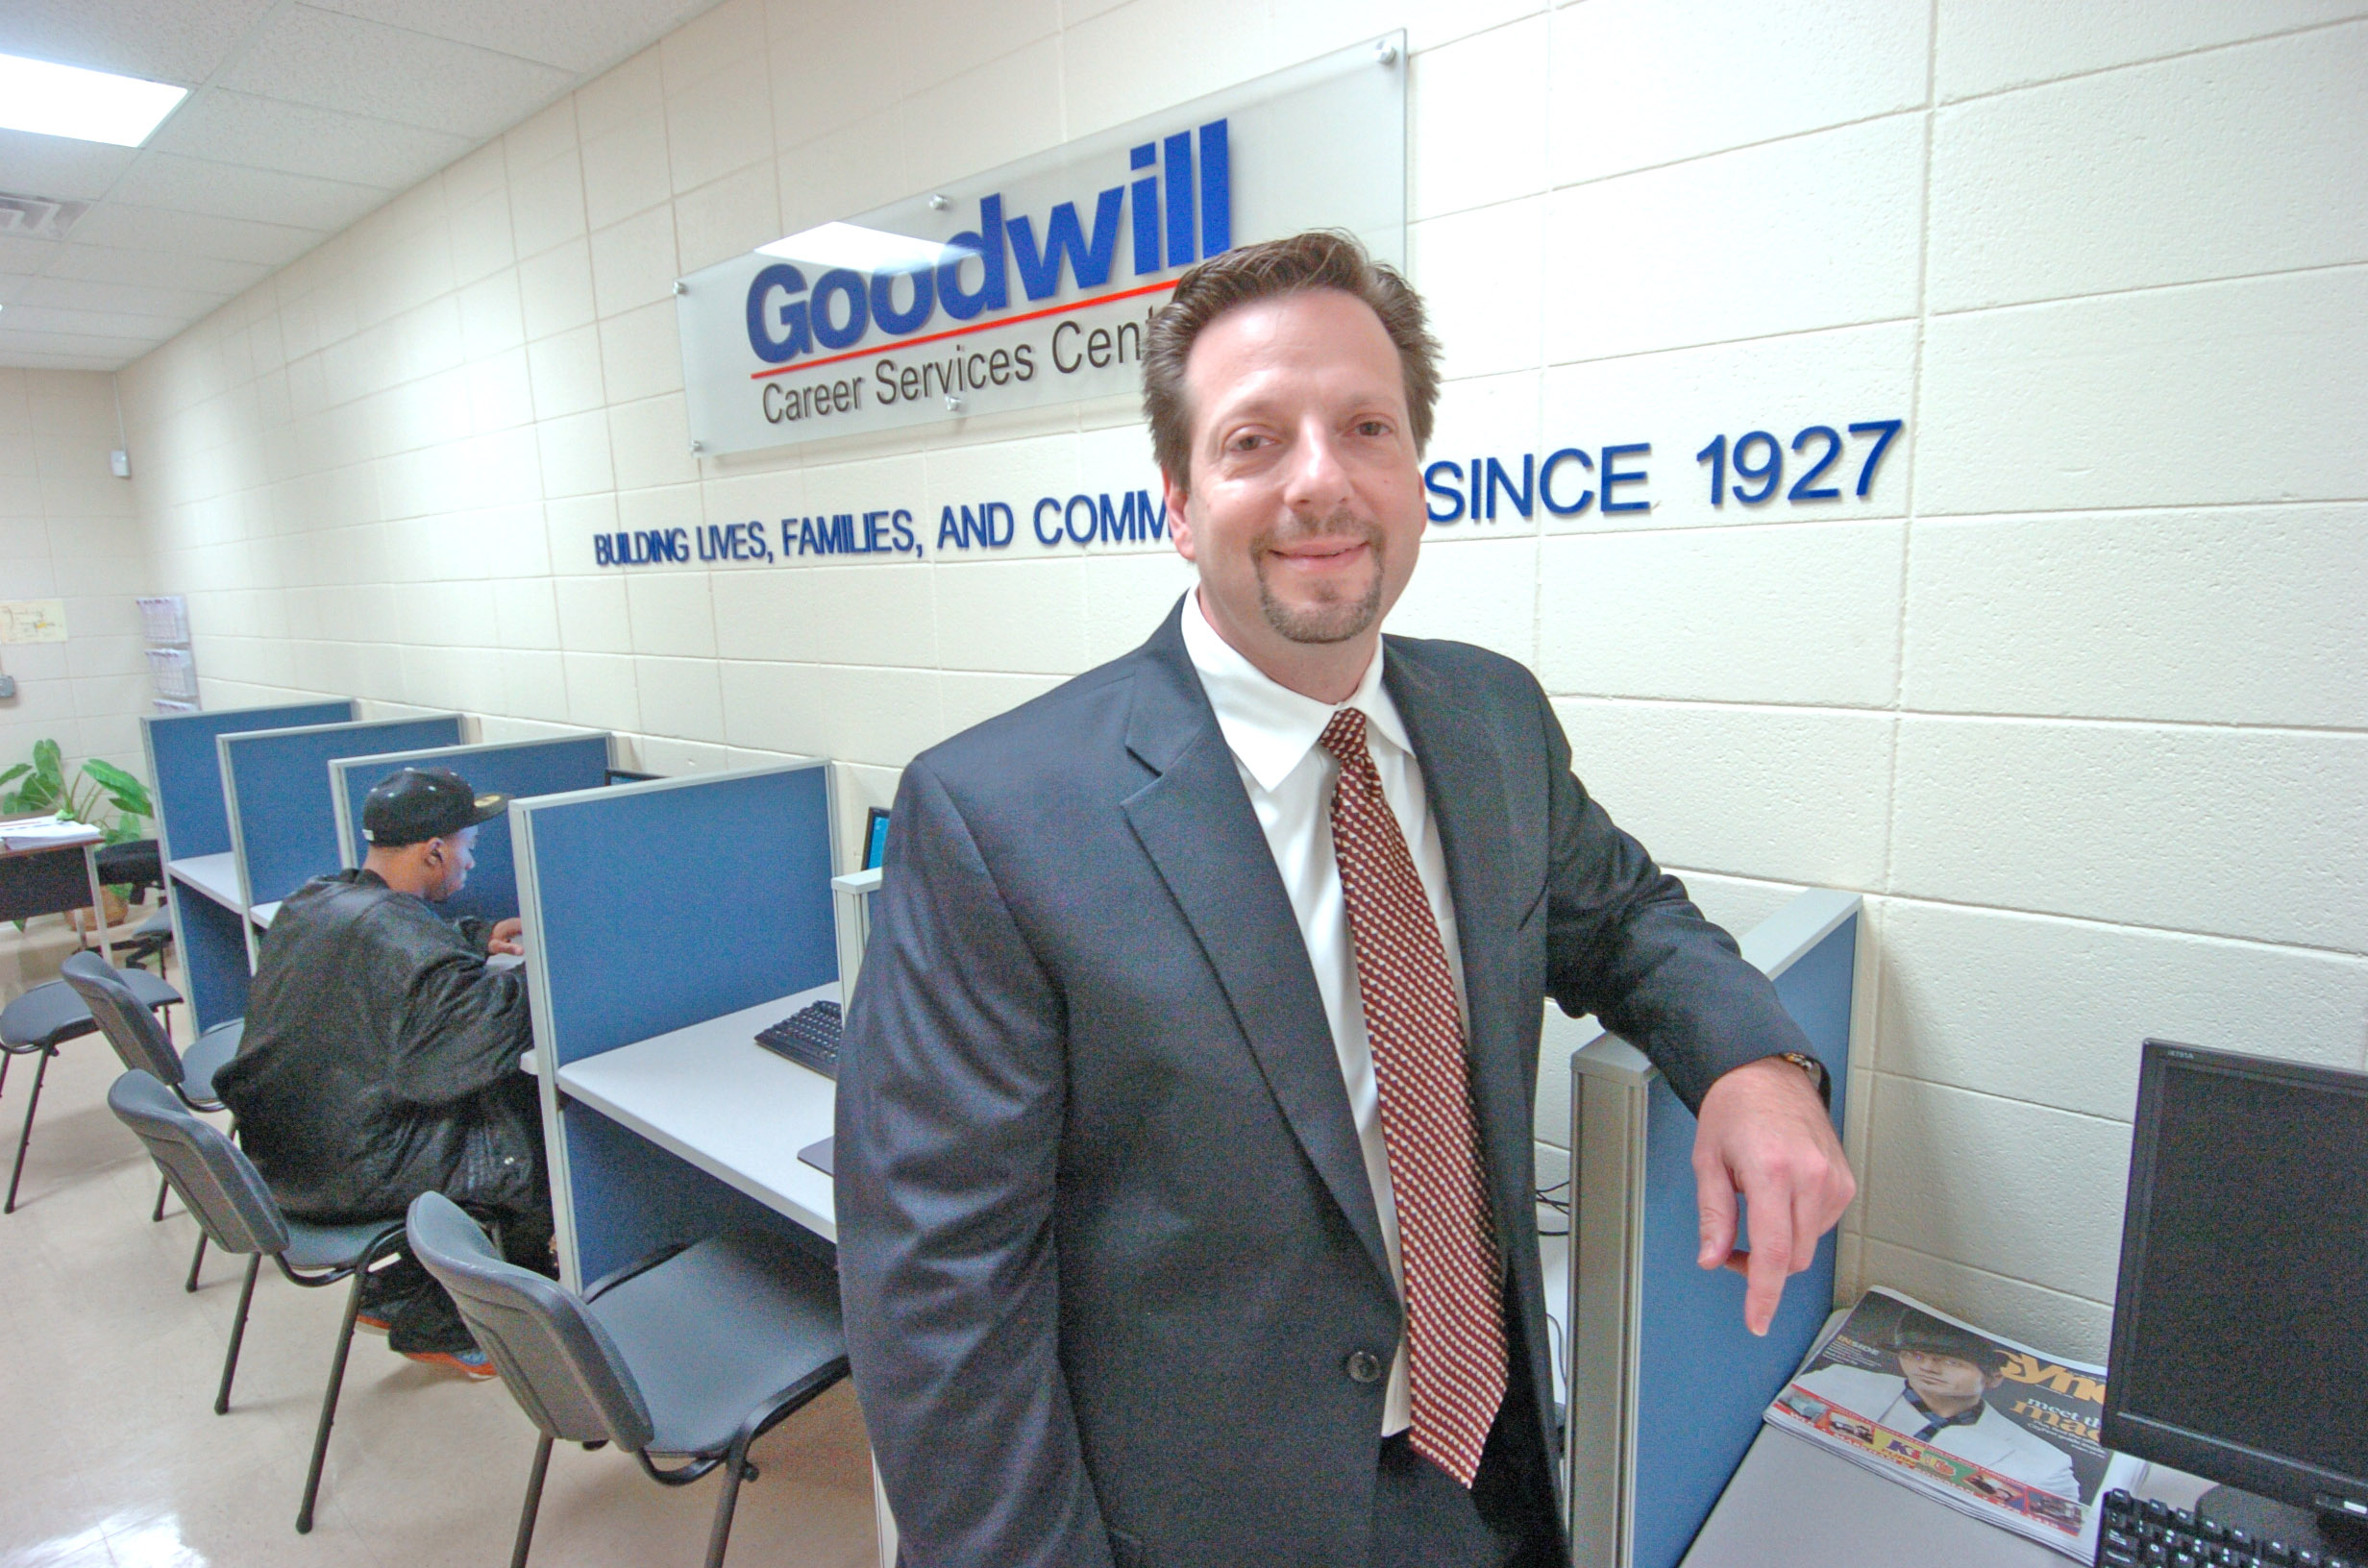 Brian Itzkow... Goodwill